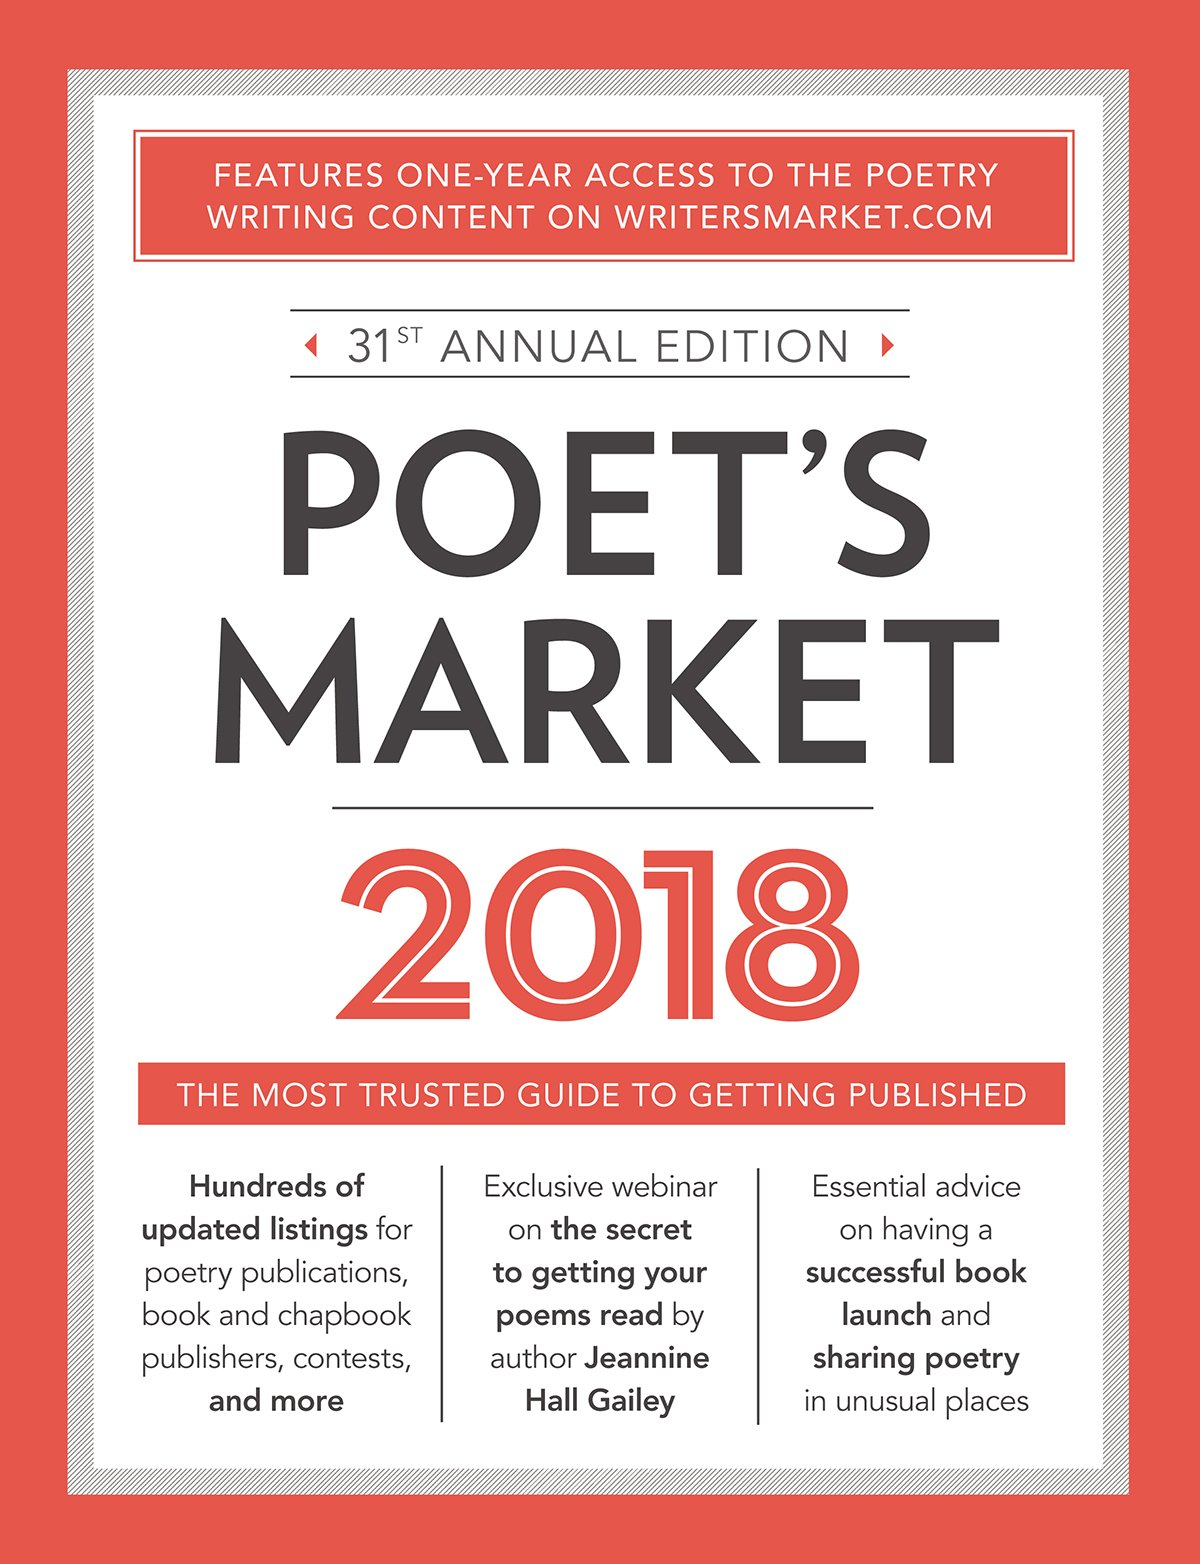 Poet's Market 2018: The Most Trusted Guide for Publishing Poetry by Writer's Digest